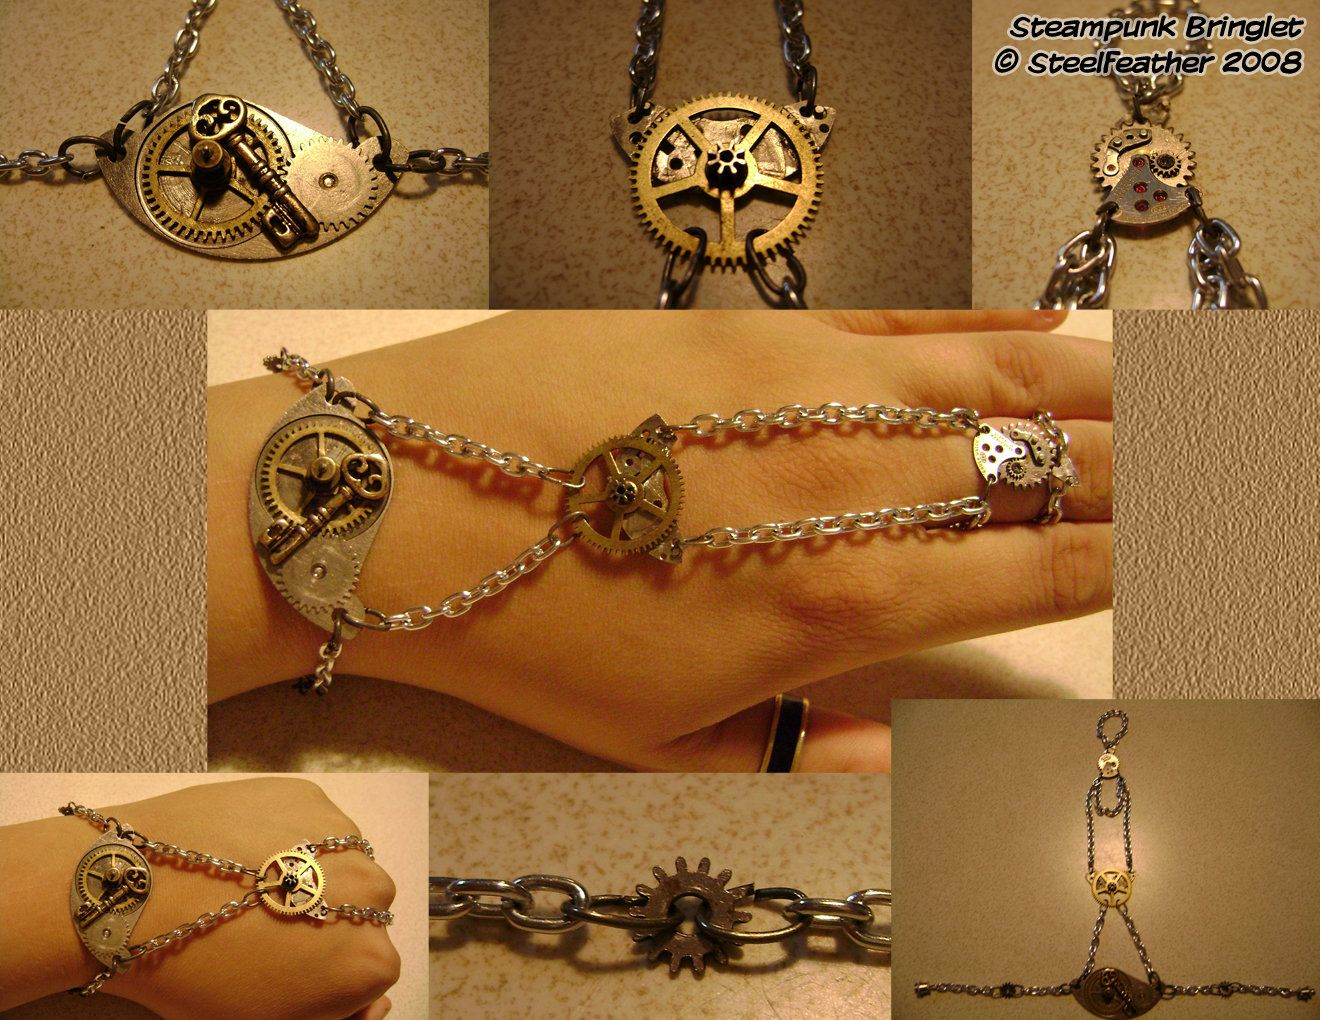 Steampunk Bringlet by Goagleon.deviantart.com on @DeviantArt